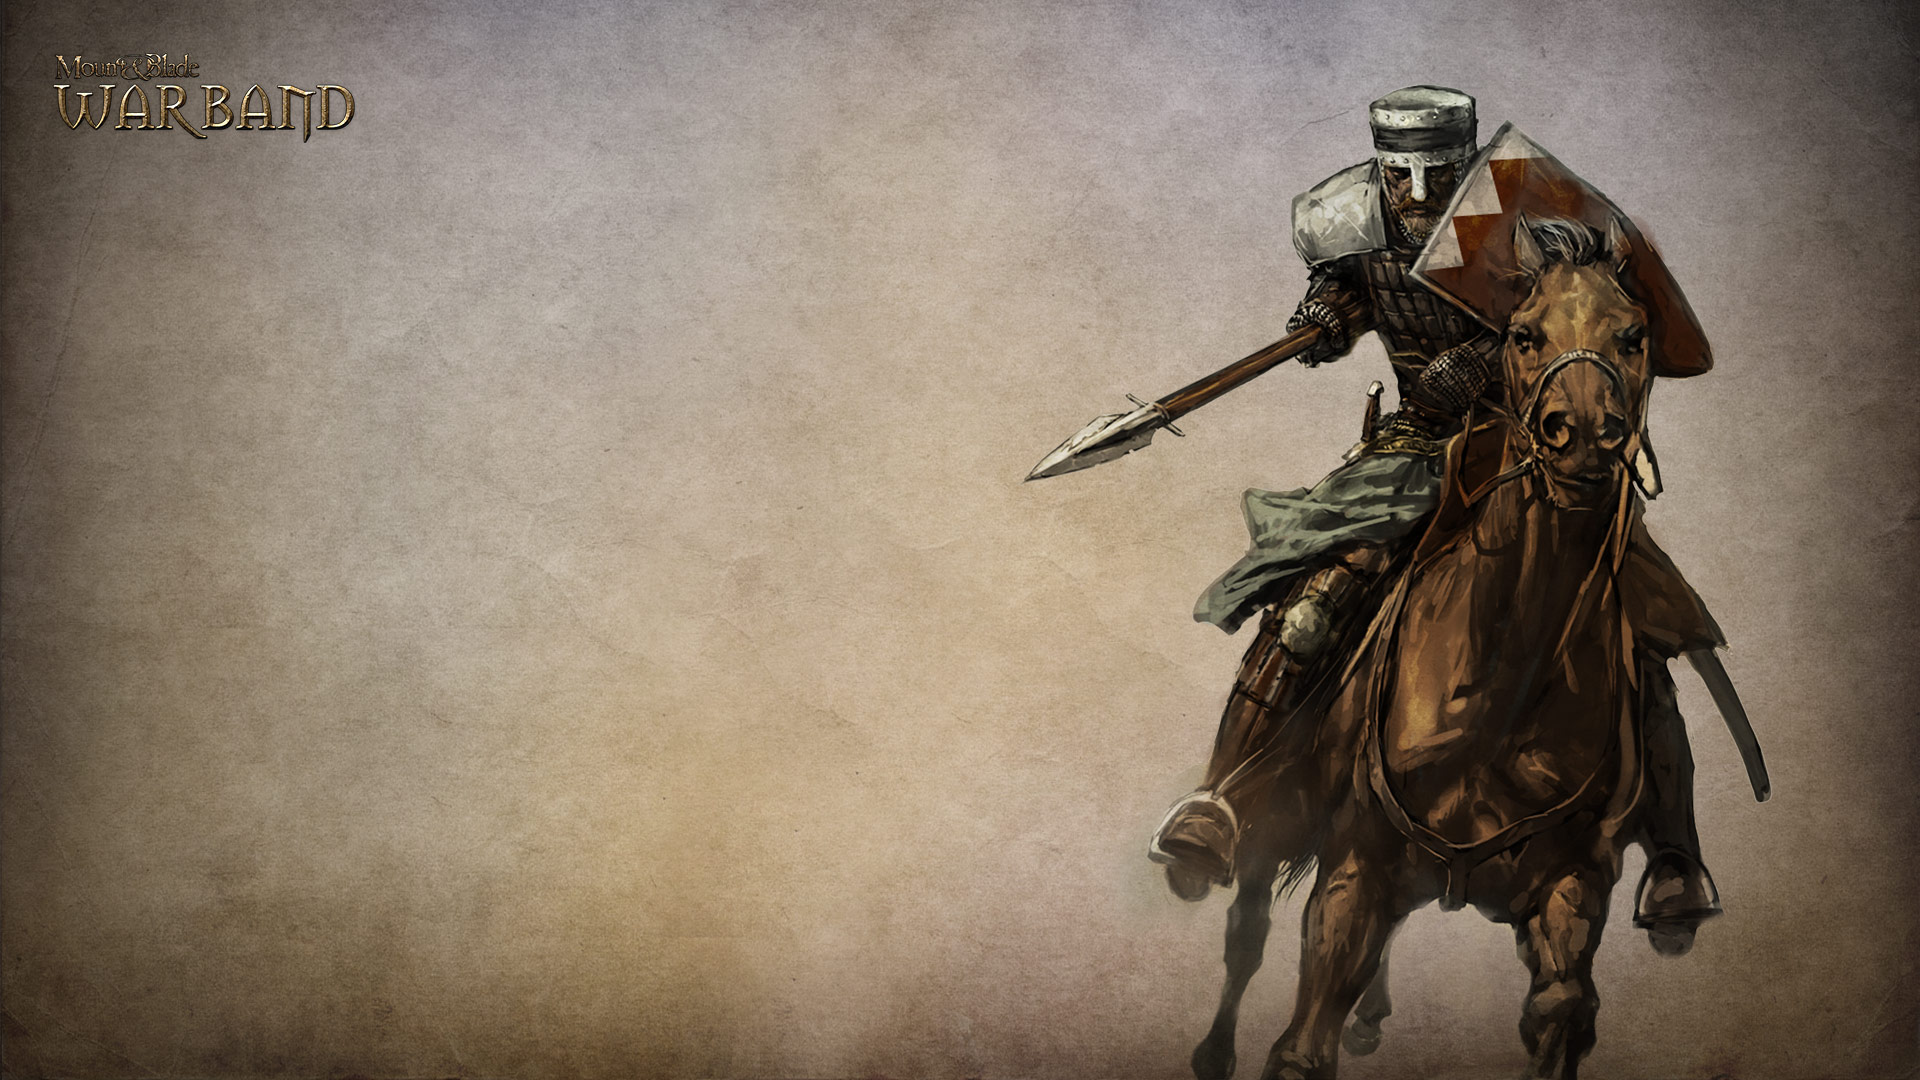 Mount and Blade Warband HD Wallpaper | Background Image | 1920x1080 |  ID:770436 - Wallpaper Abyss